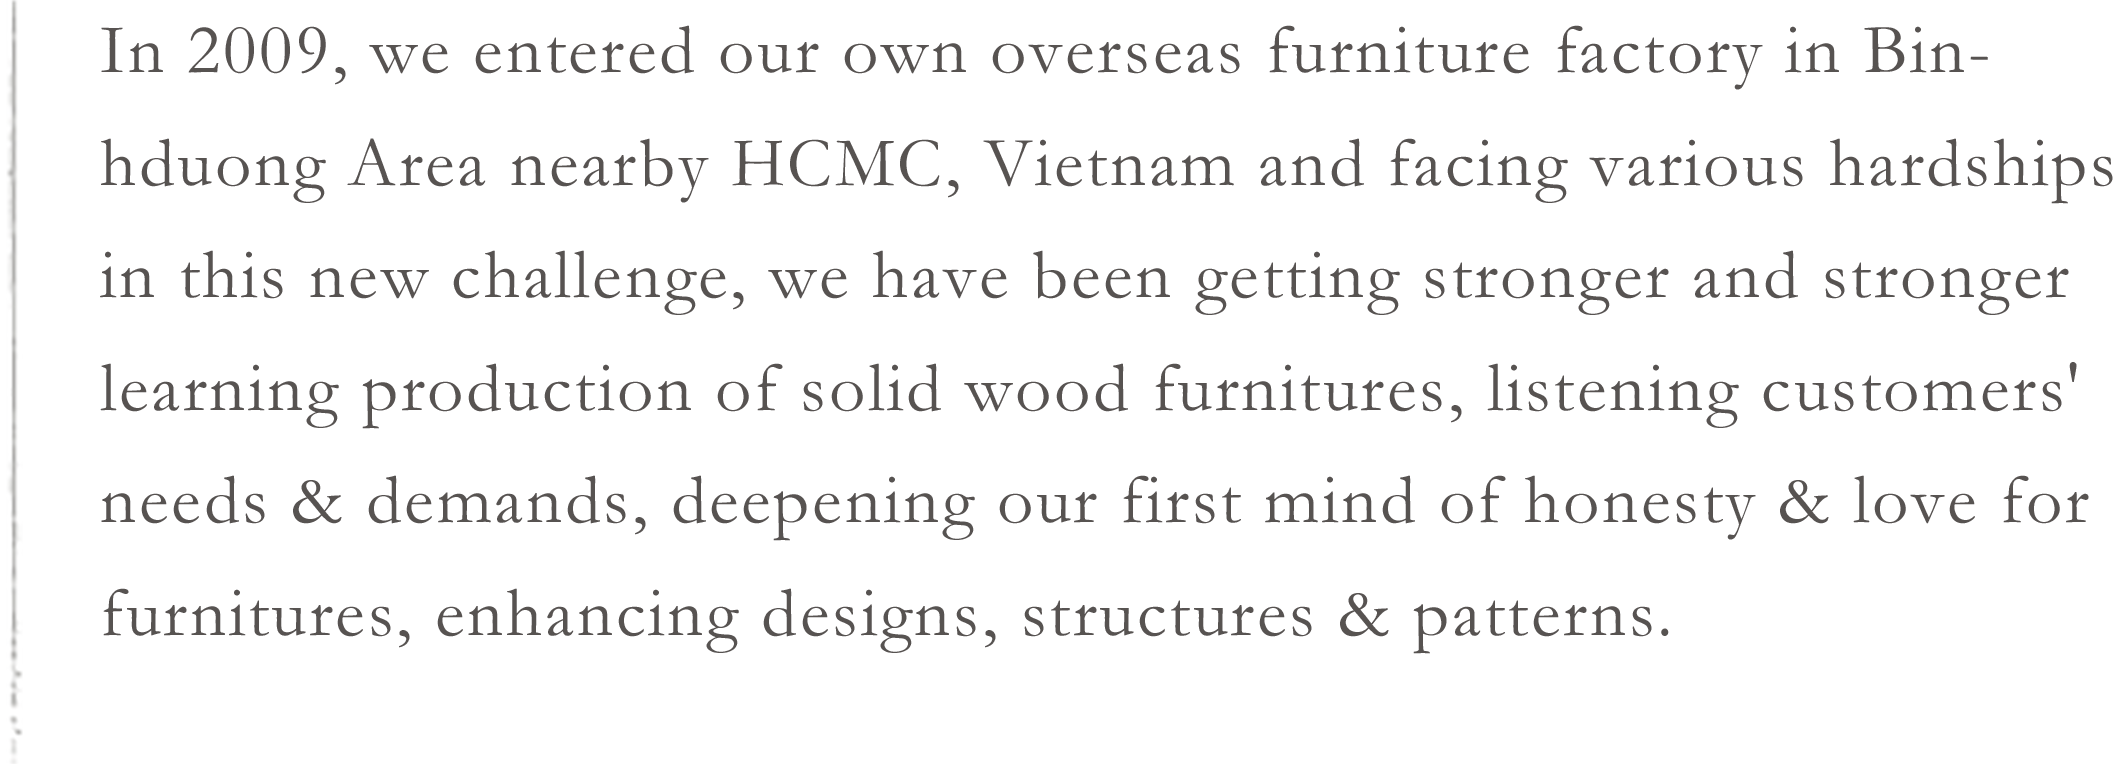 In 2009, we entered our own overseas furniture factory in Binhduong Area nearby HCMC, Vietnam and facing various hardships in this new challenge, we have been getting stronger and stronger learning production of solid wood furnitures, listening customers' needs & demands, deepening our first mind of honesty & love for furnitures, enhancing designs, structures & patterns.